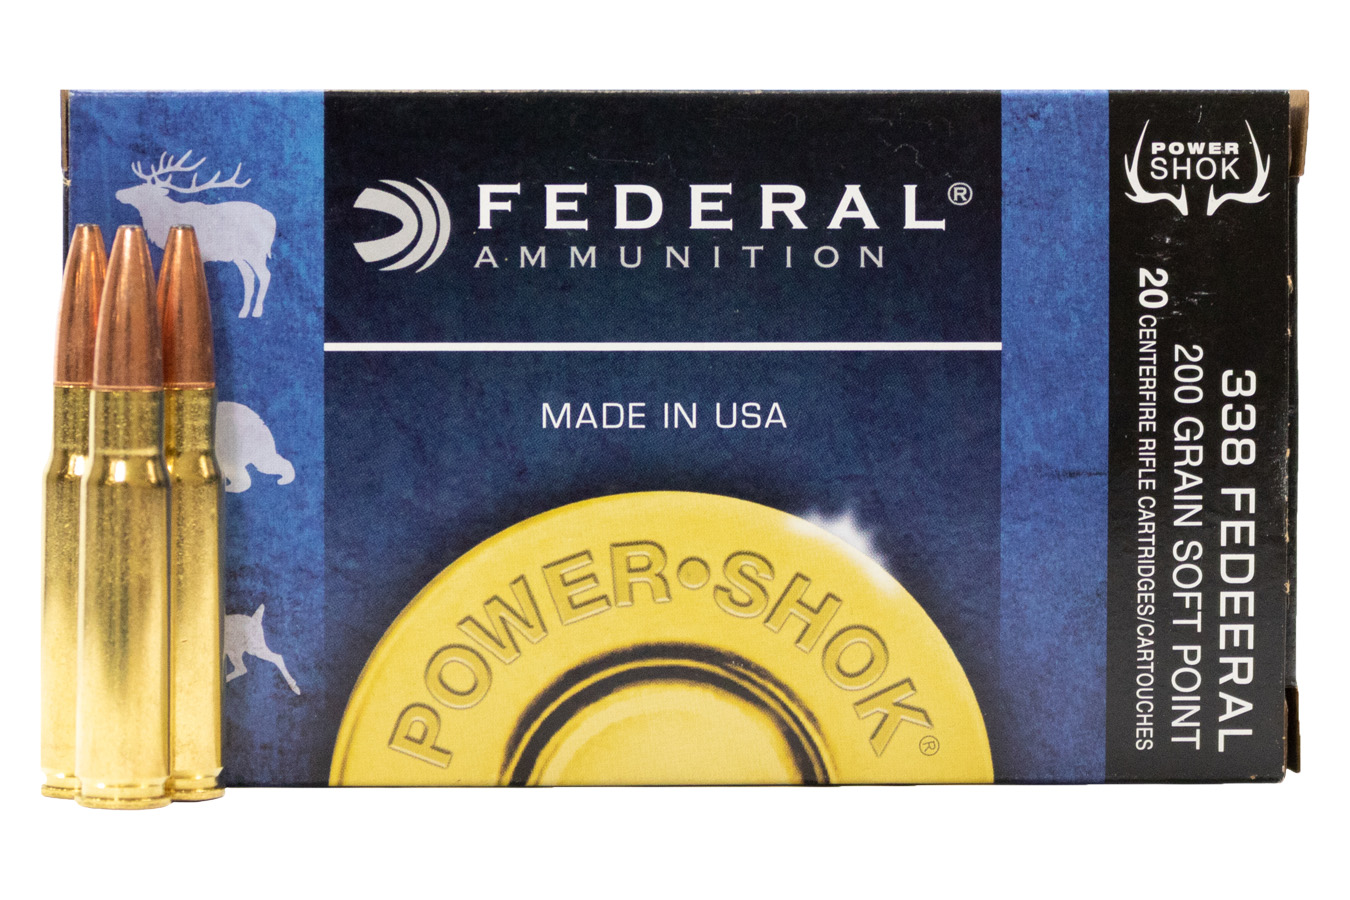 338 FEDERAL 200 GR SOFT POINT POWER-SHOK